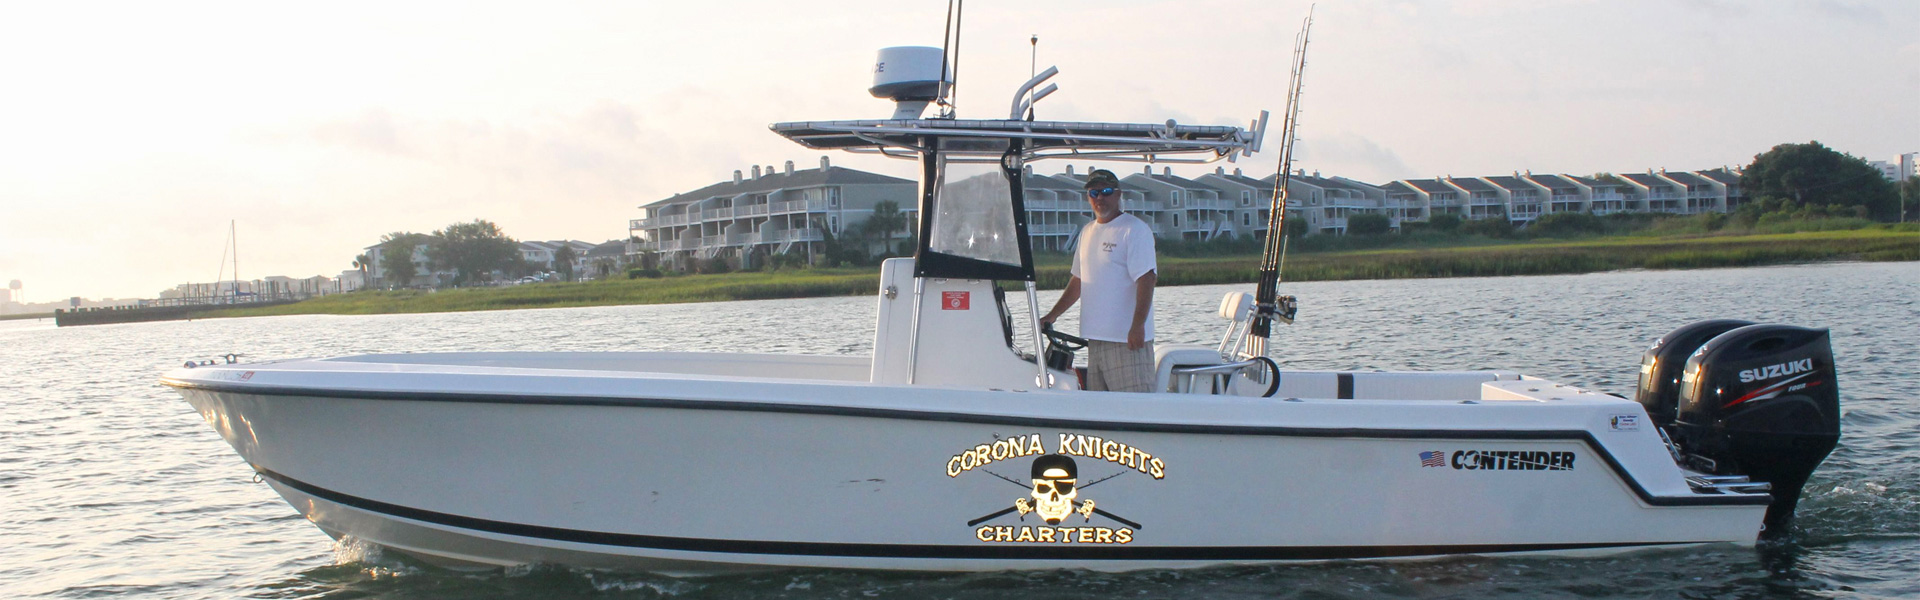 WilmingtonFishingCharters